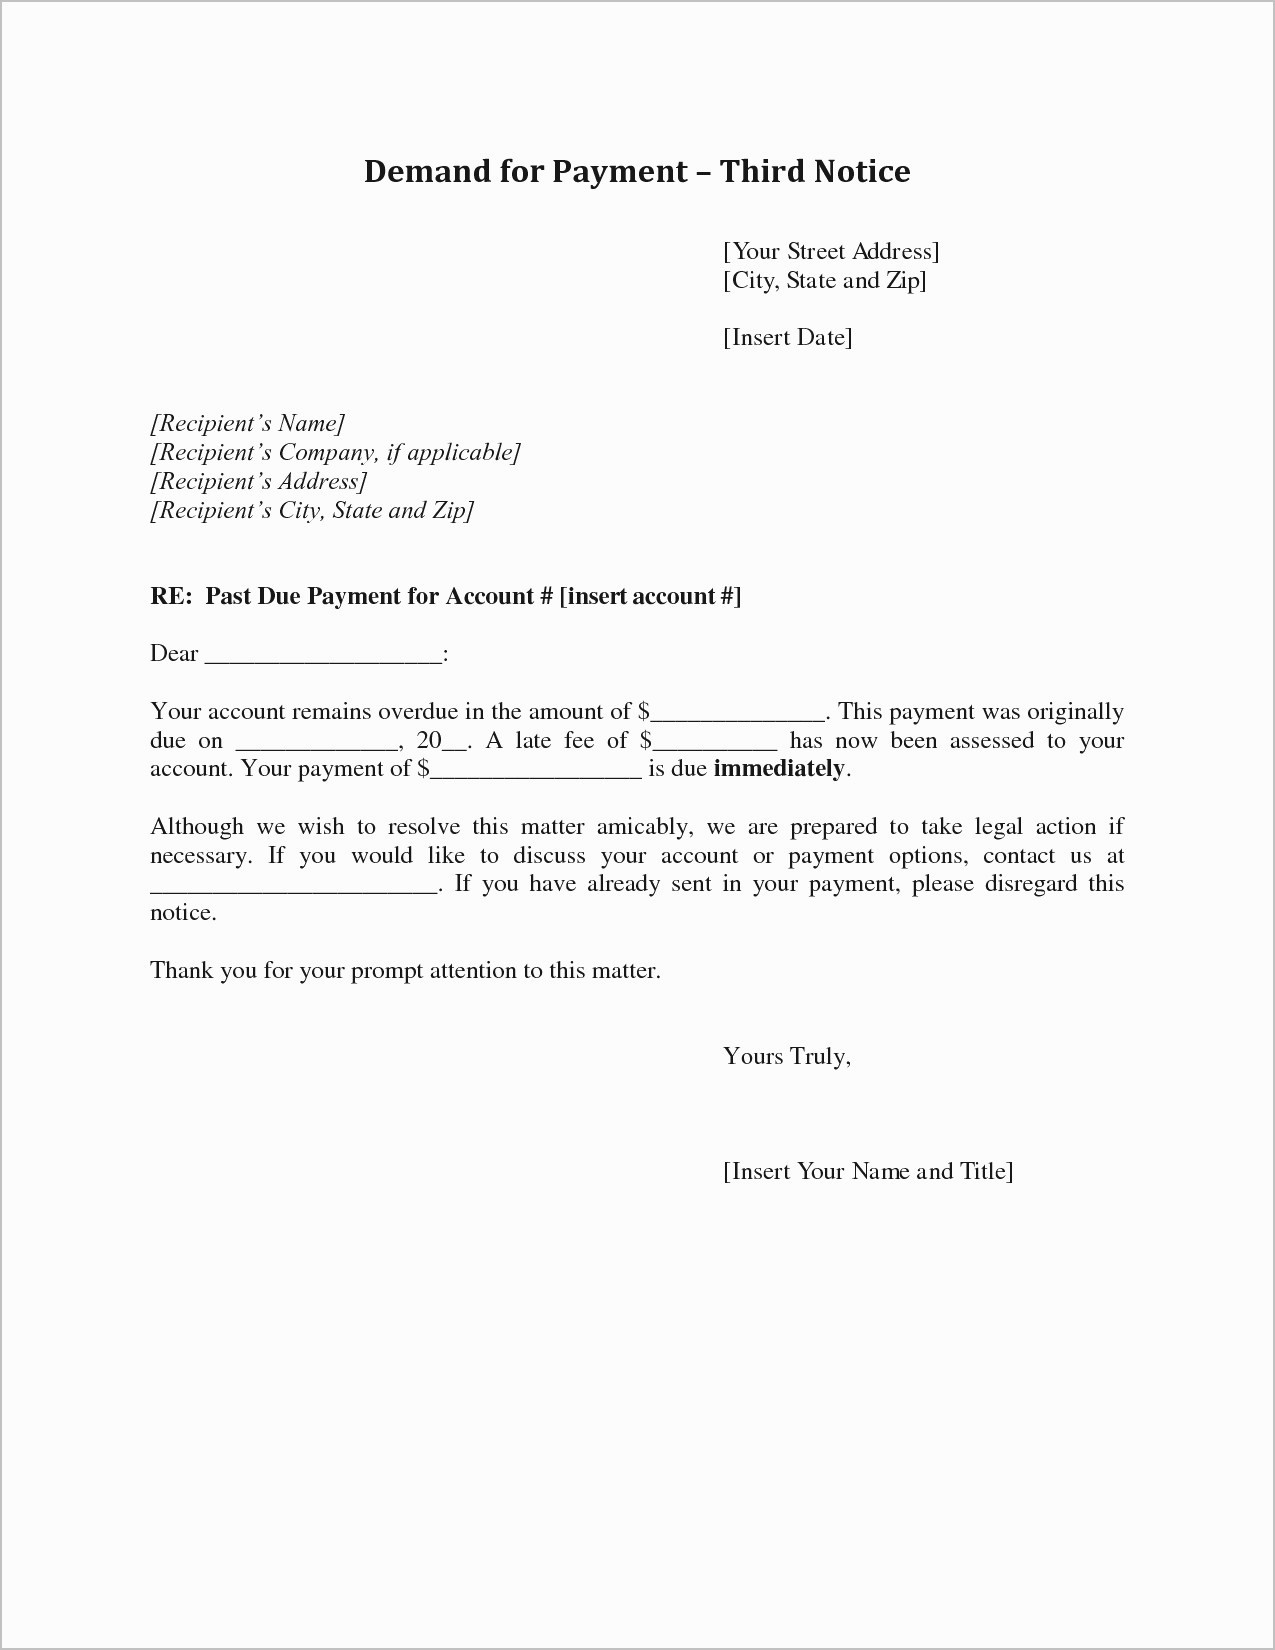 Free Demand Letter Template - Homeowners Insurance Non Renewal Letter Unique Sample Demand Letter